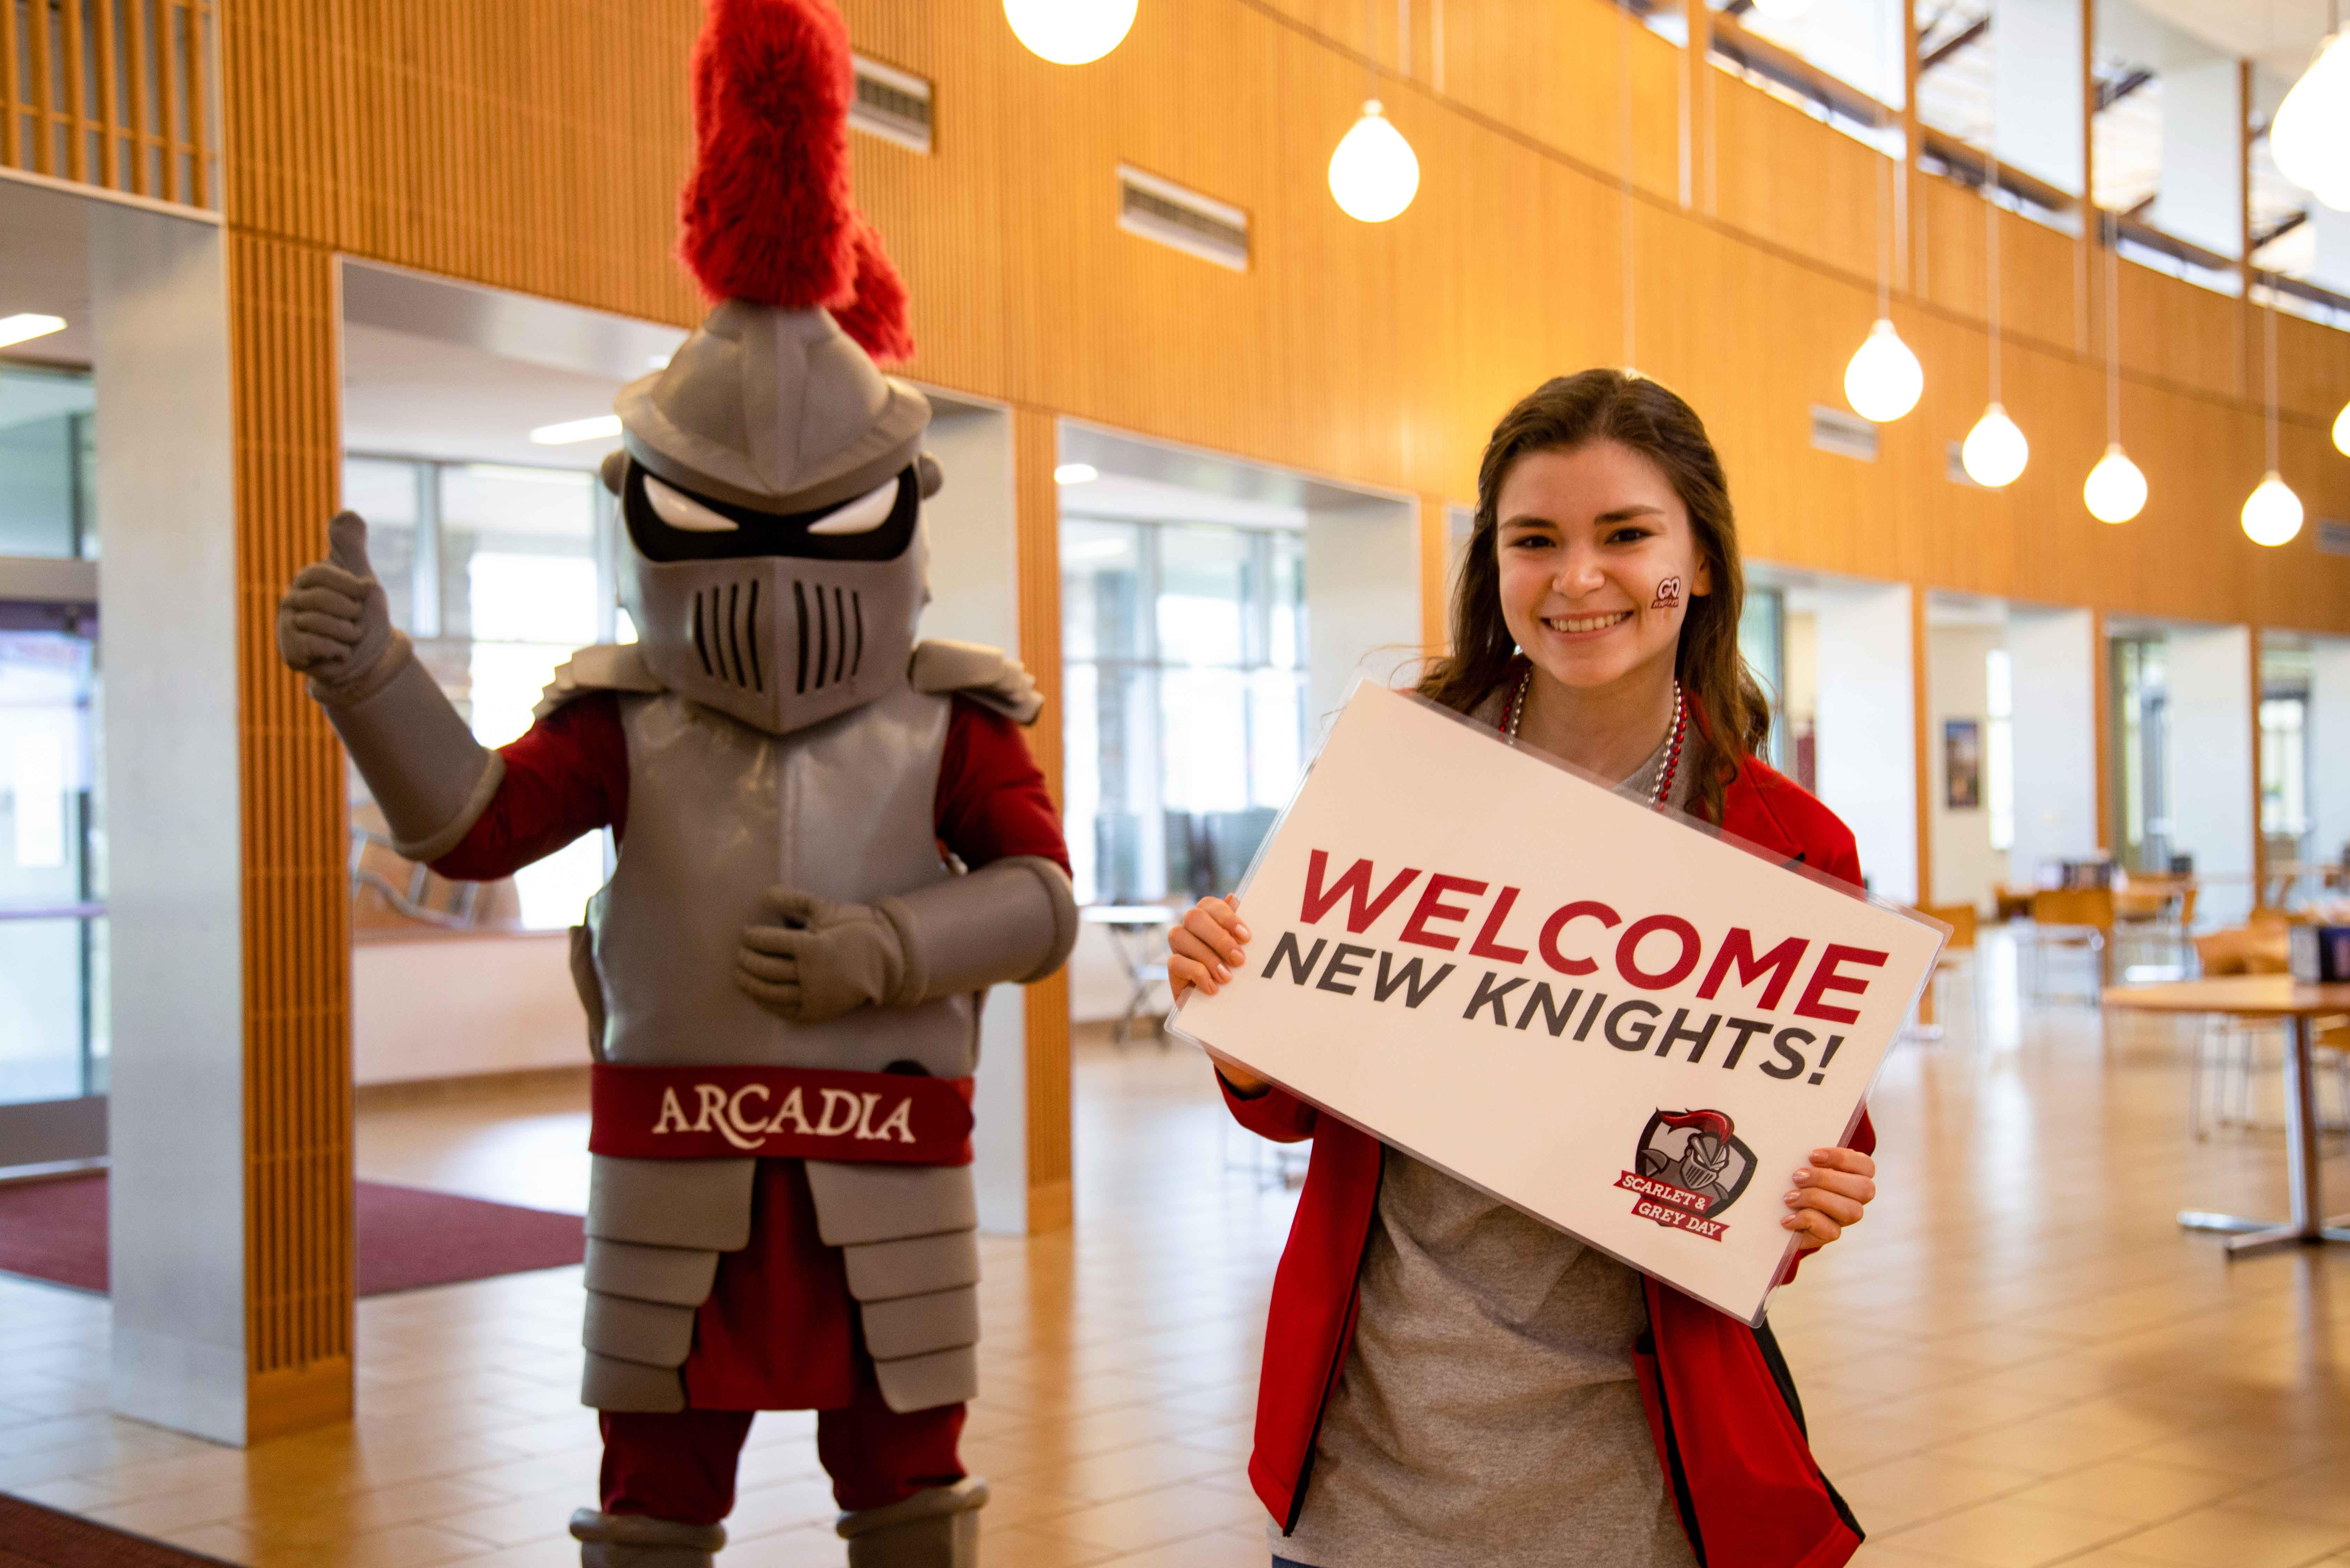 Female student holds welcome new knights sign in commons with knight behind her.